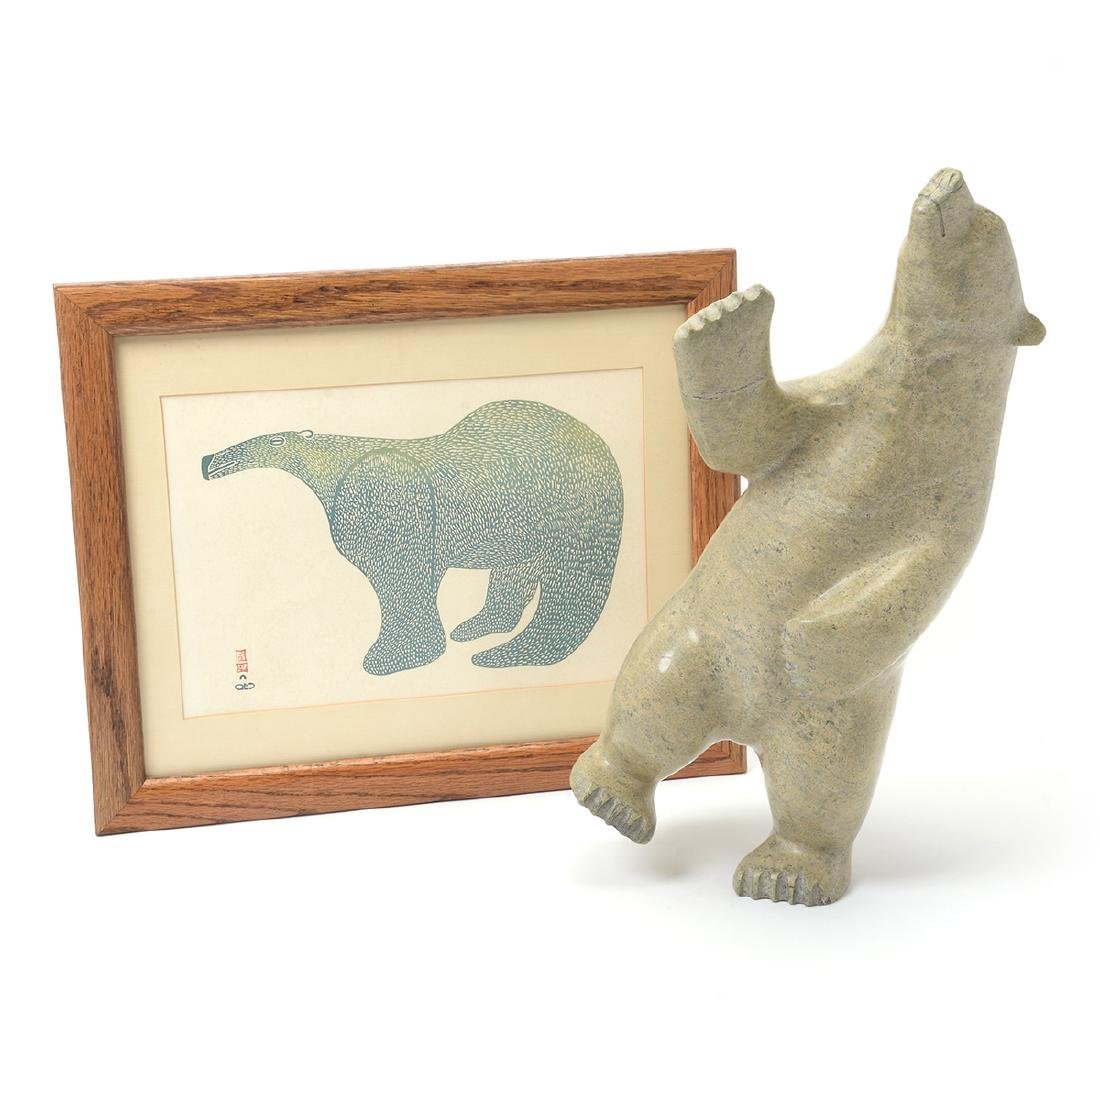 Woodblock inuit print and soapstone sculpture of bear